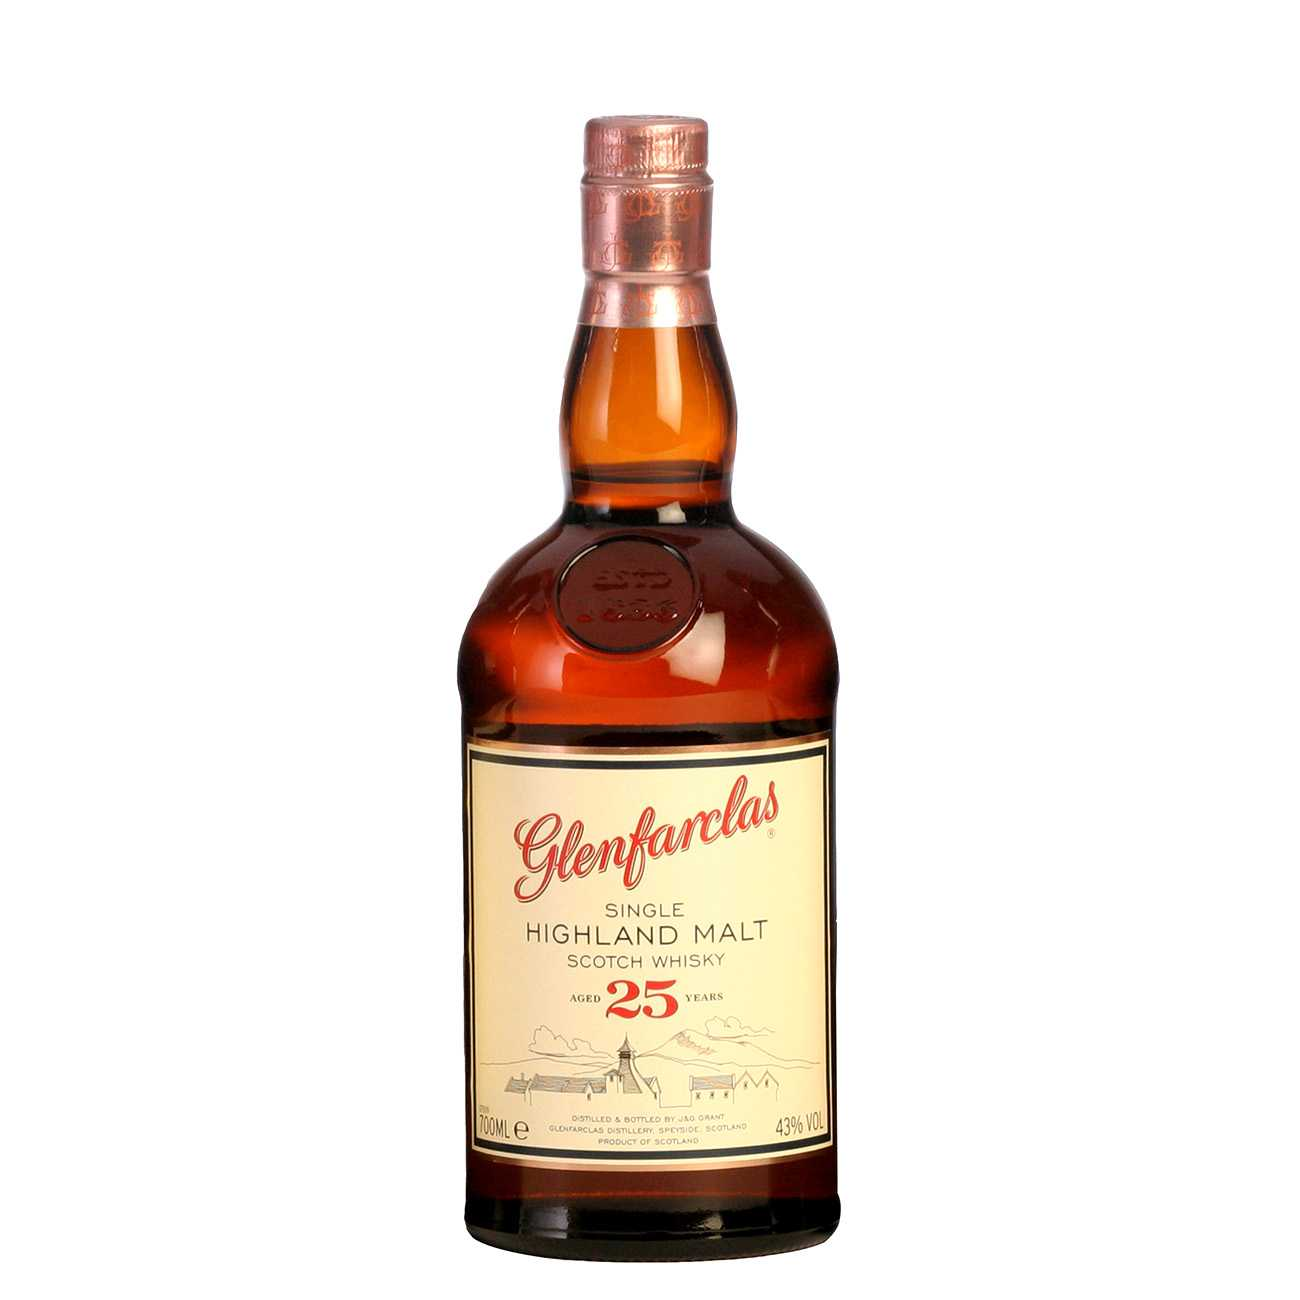 Whisky scotian, 25 YEAR OLD 700 ML, Glenfarclas